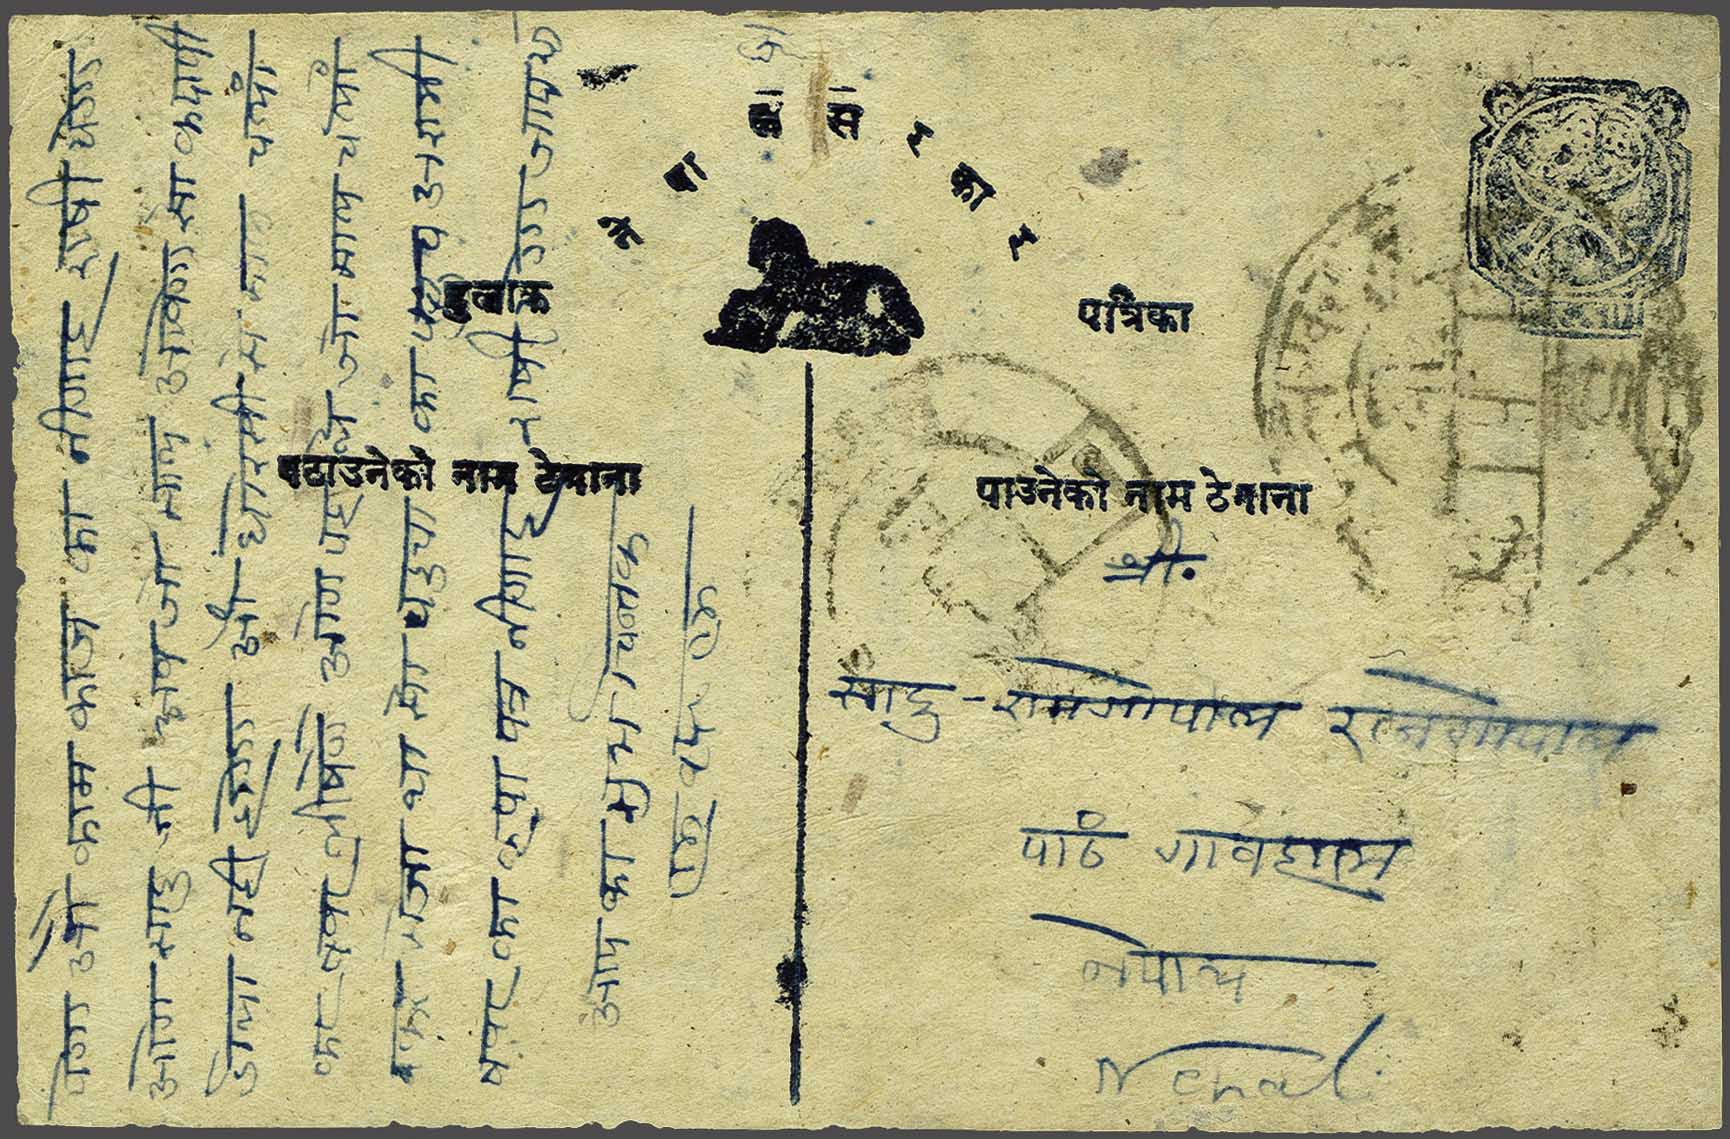 Lot 52 - Great Britain and former colonies Nepal -  Corinphila Veilingen Auction 245-246 Day 1 - Nepal - The Dick van der Wateren Collection, Foreign countries - Single lots, Picture postcards